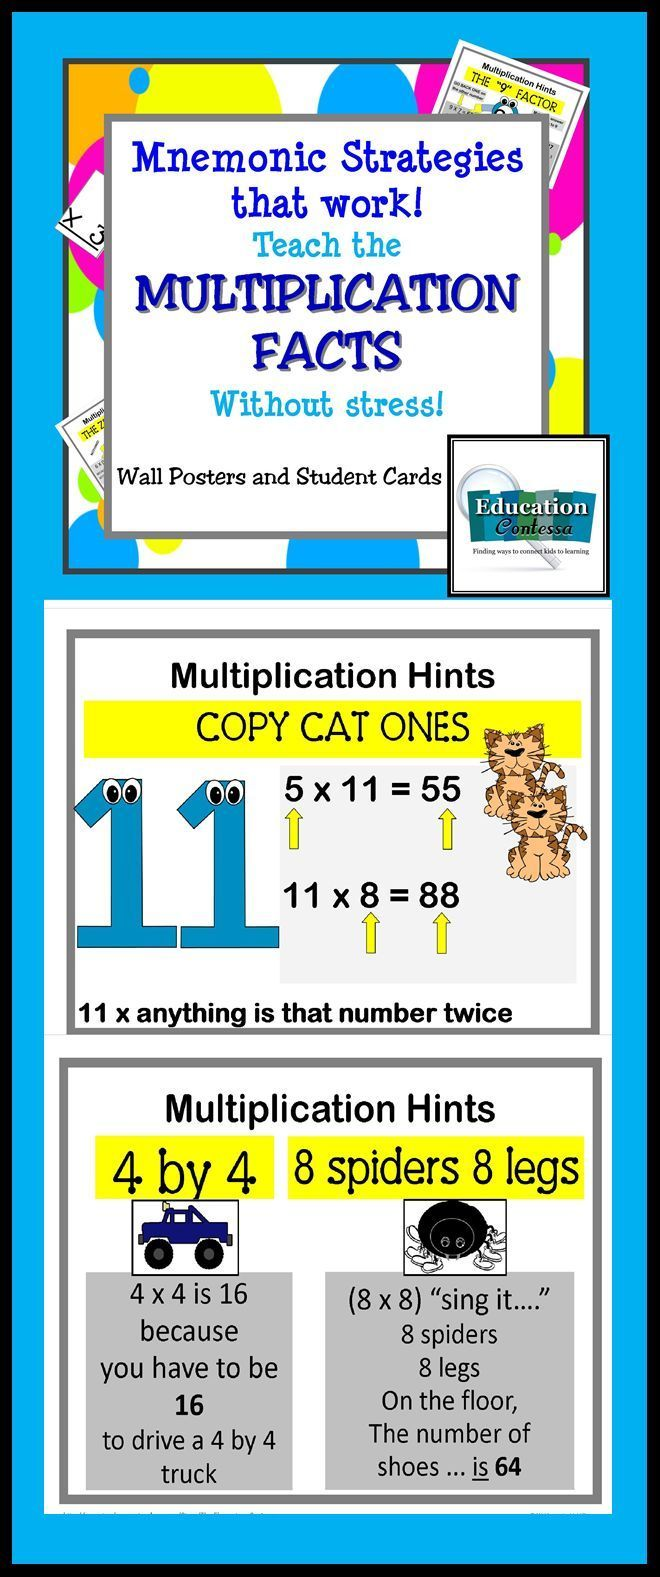 Best way to learn multiplication table gallery periodic table images best way to learn multiplication table gallery periodic table images multiplication fact practice worksheet grade 3 gamestrikefo Choice Image